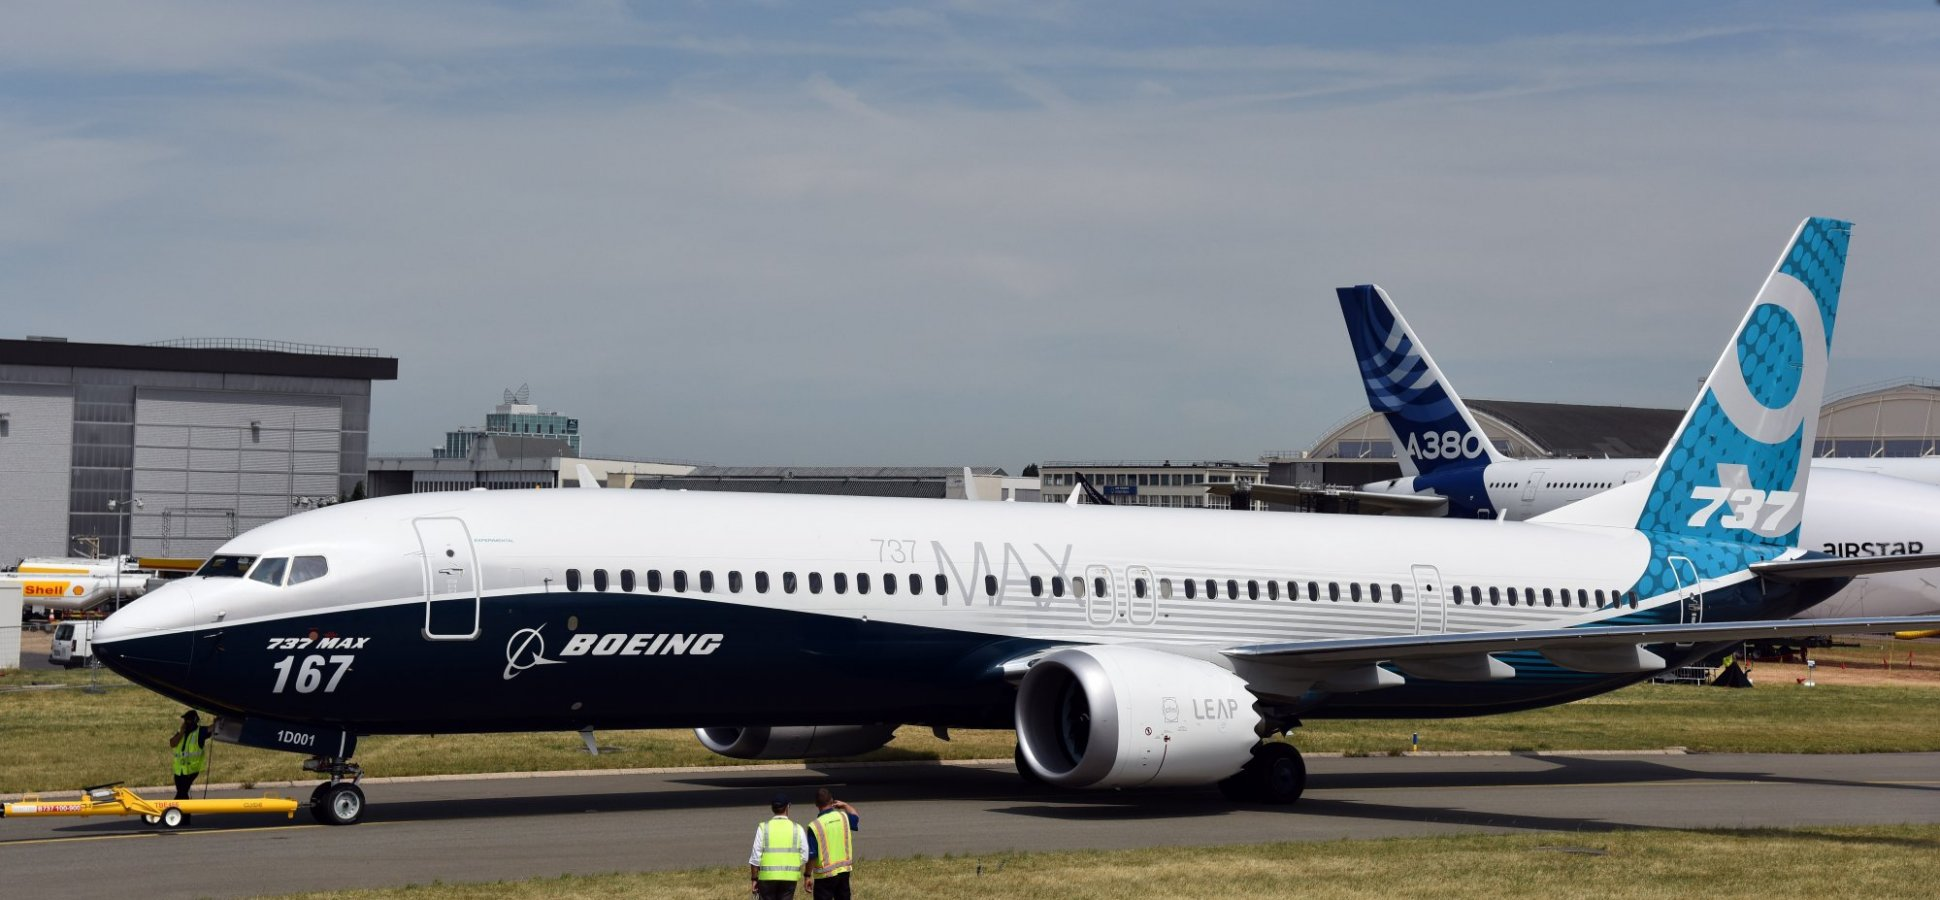 boeing submitted software fix for 737 max weeks before ethiopia crash